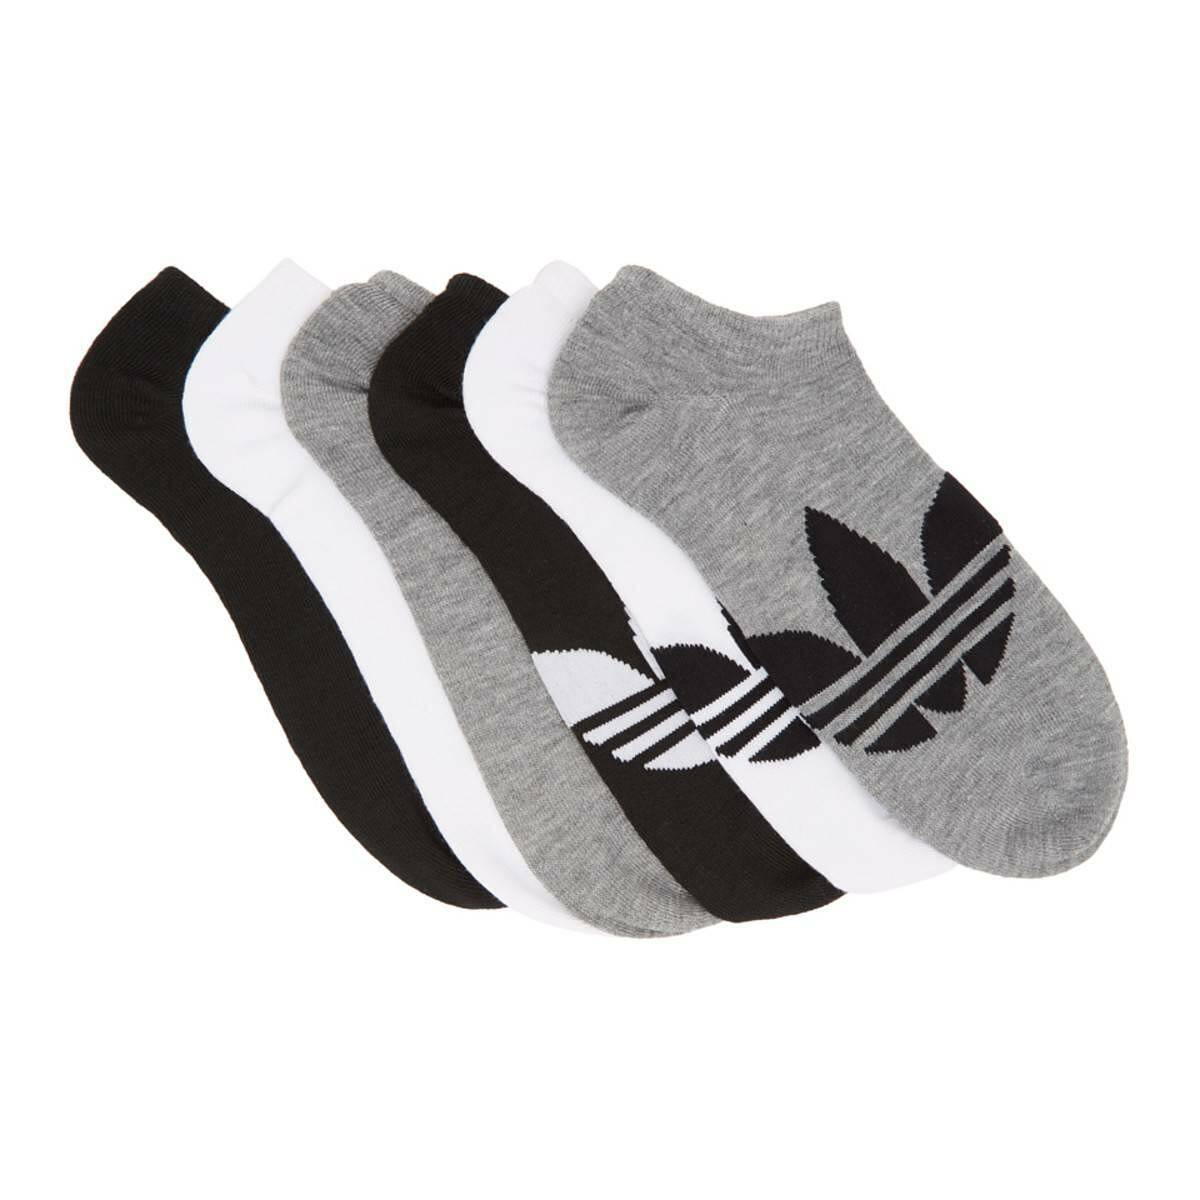 adidas Originals Six-Pack Multicolor Solid Ankle Socks Ssense USA MEN Men ACCESSORIES Mens SOCKS